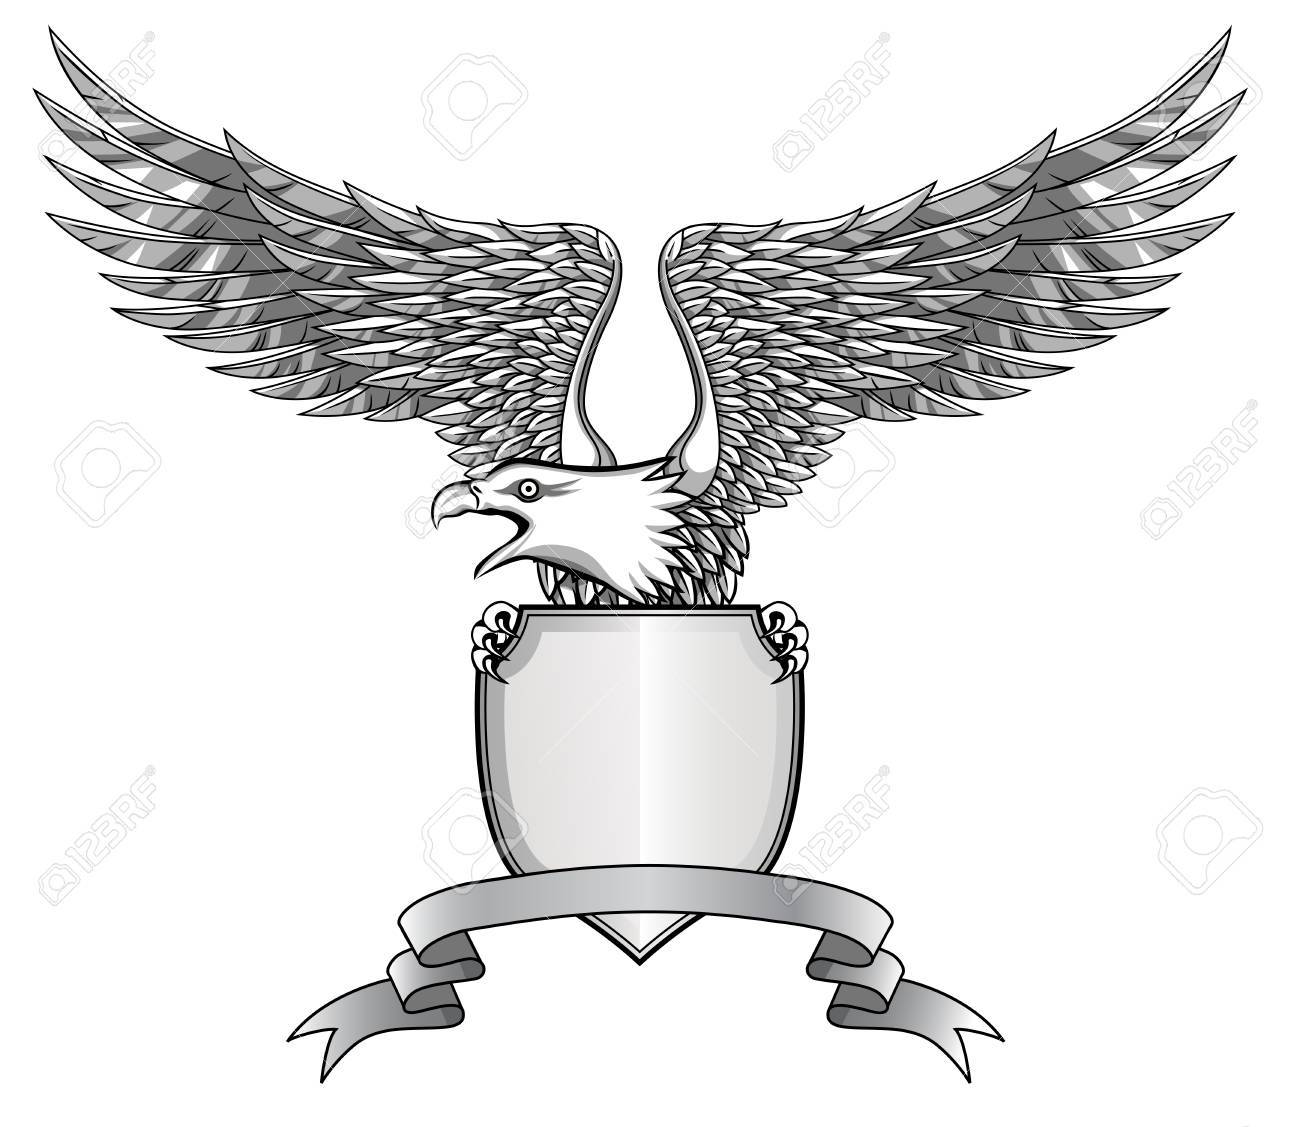 Eagle with emblem Stock Vector - 12152725